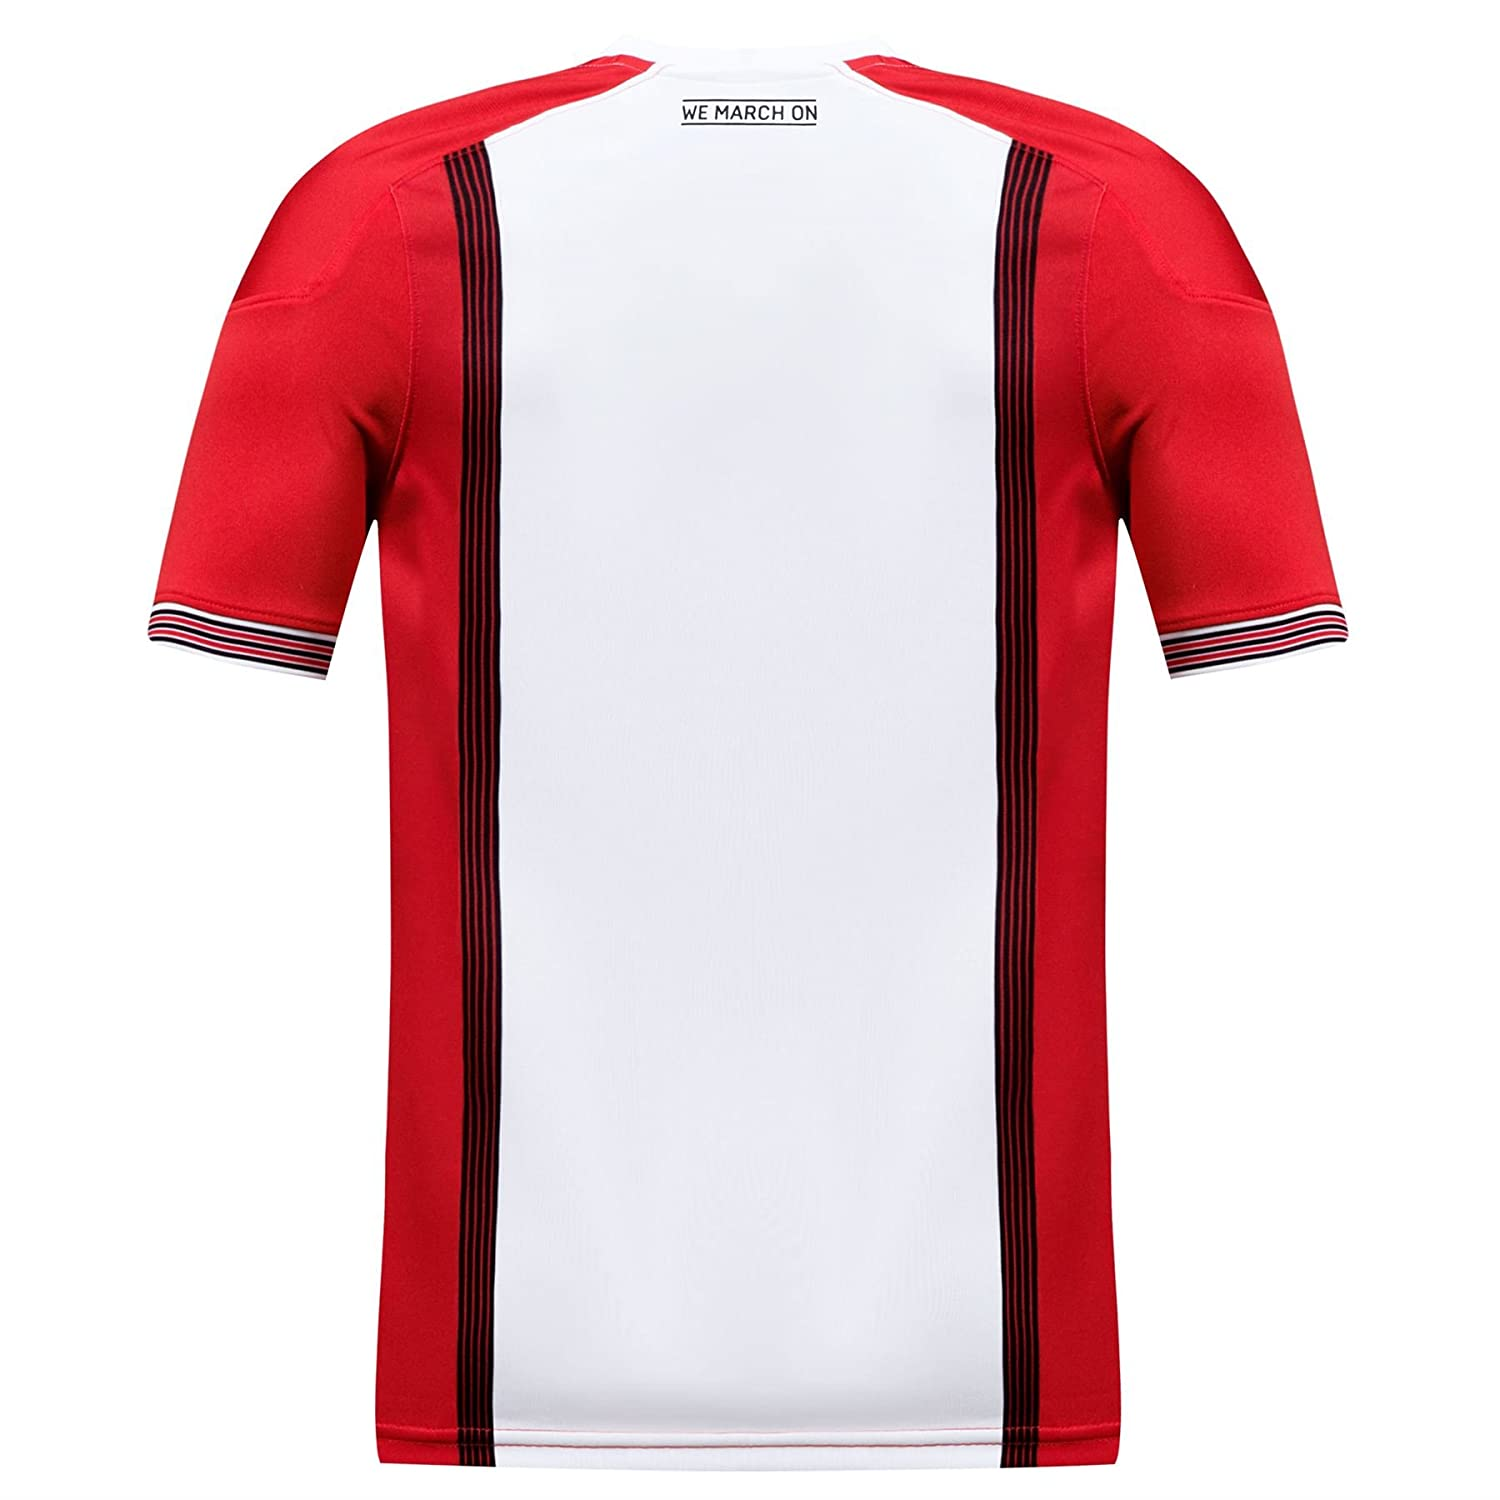 Under Armour Southampton FC 17/18 infantil Local Manga Corta Camiseta de fútbol - rojo/blanco: Amazon.es: Ropa y accesorios